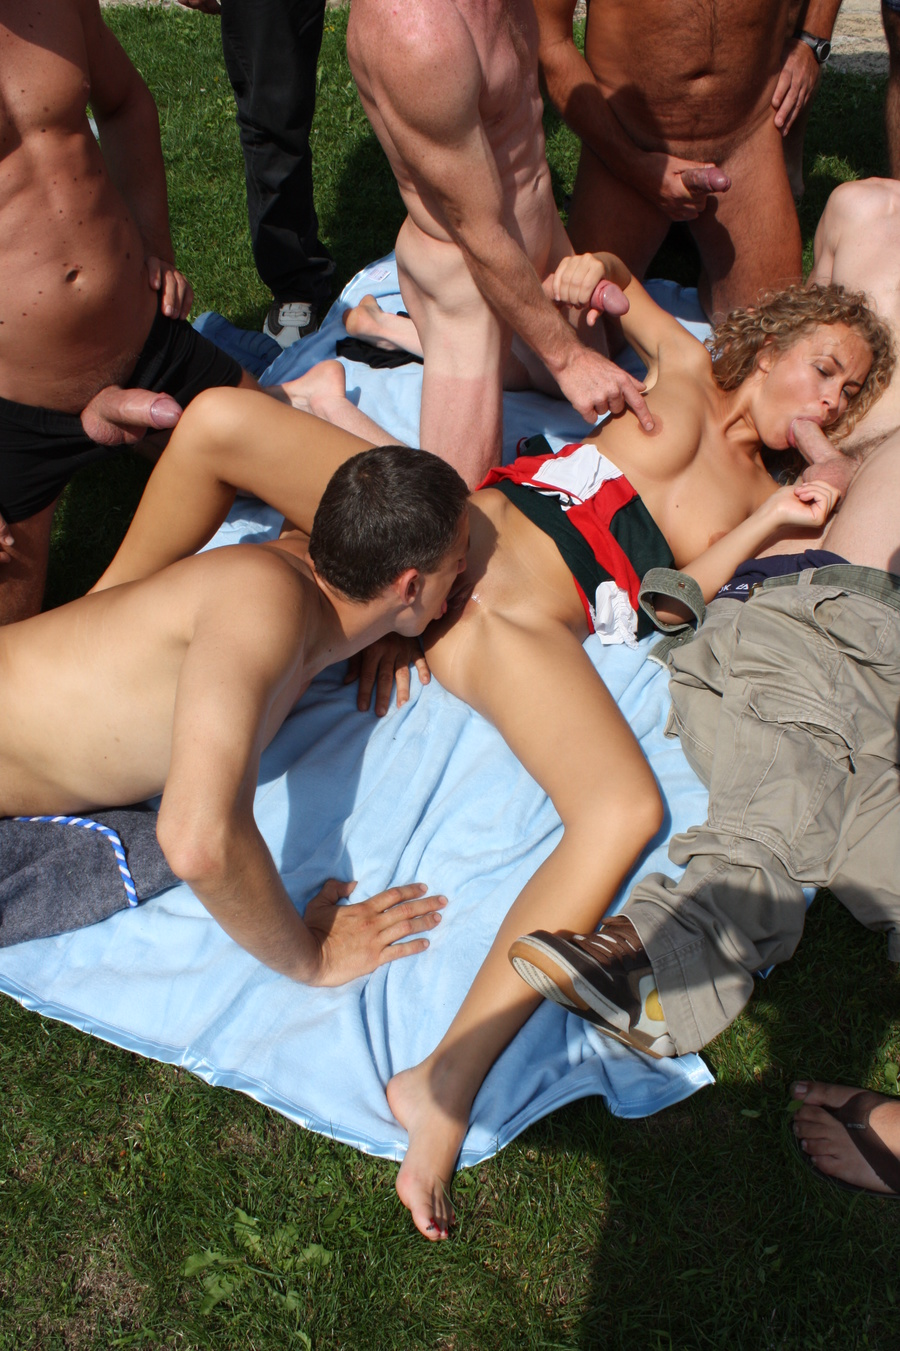 Erotic pictures showing three guys on a girl